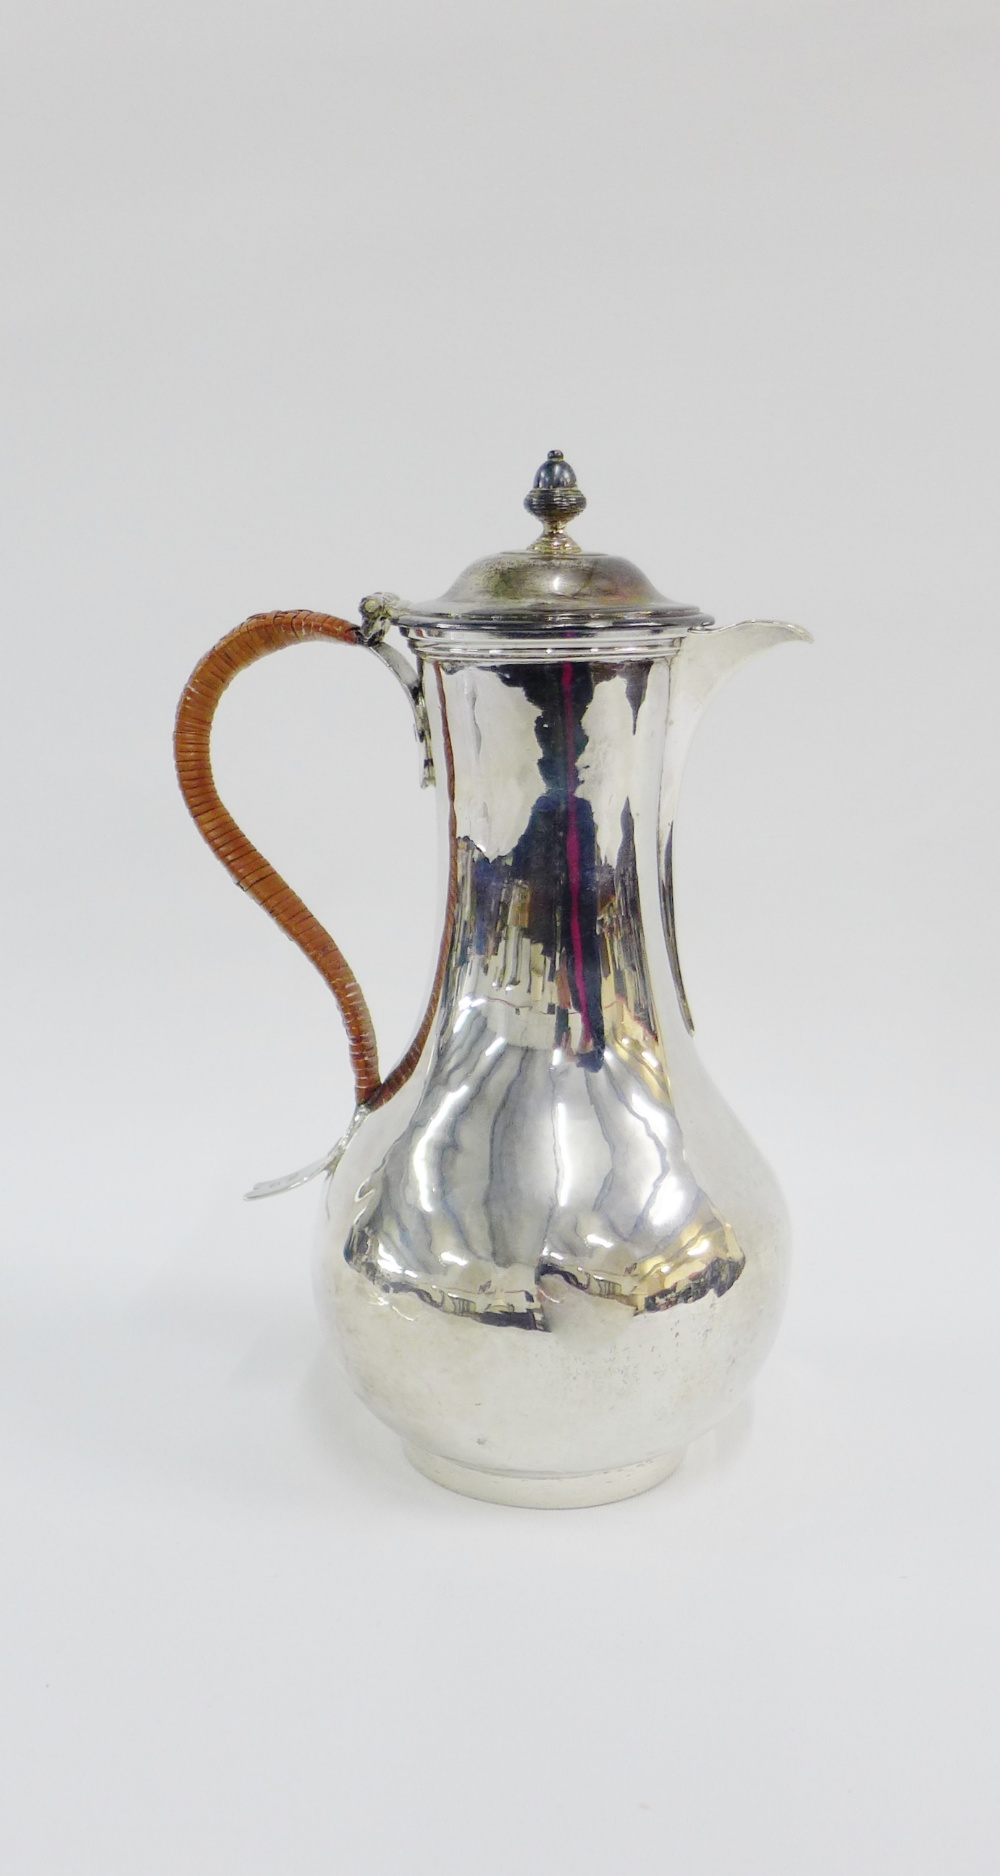 Lot 49 - George II silver coffee pot, makers mark for William Cripps, London 1750, 24cm high